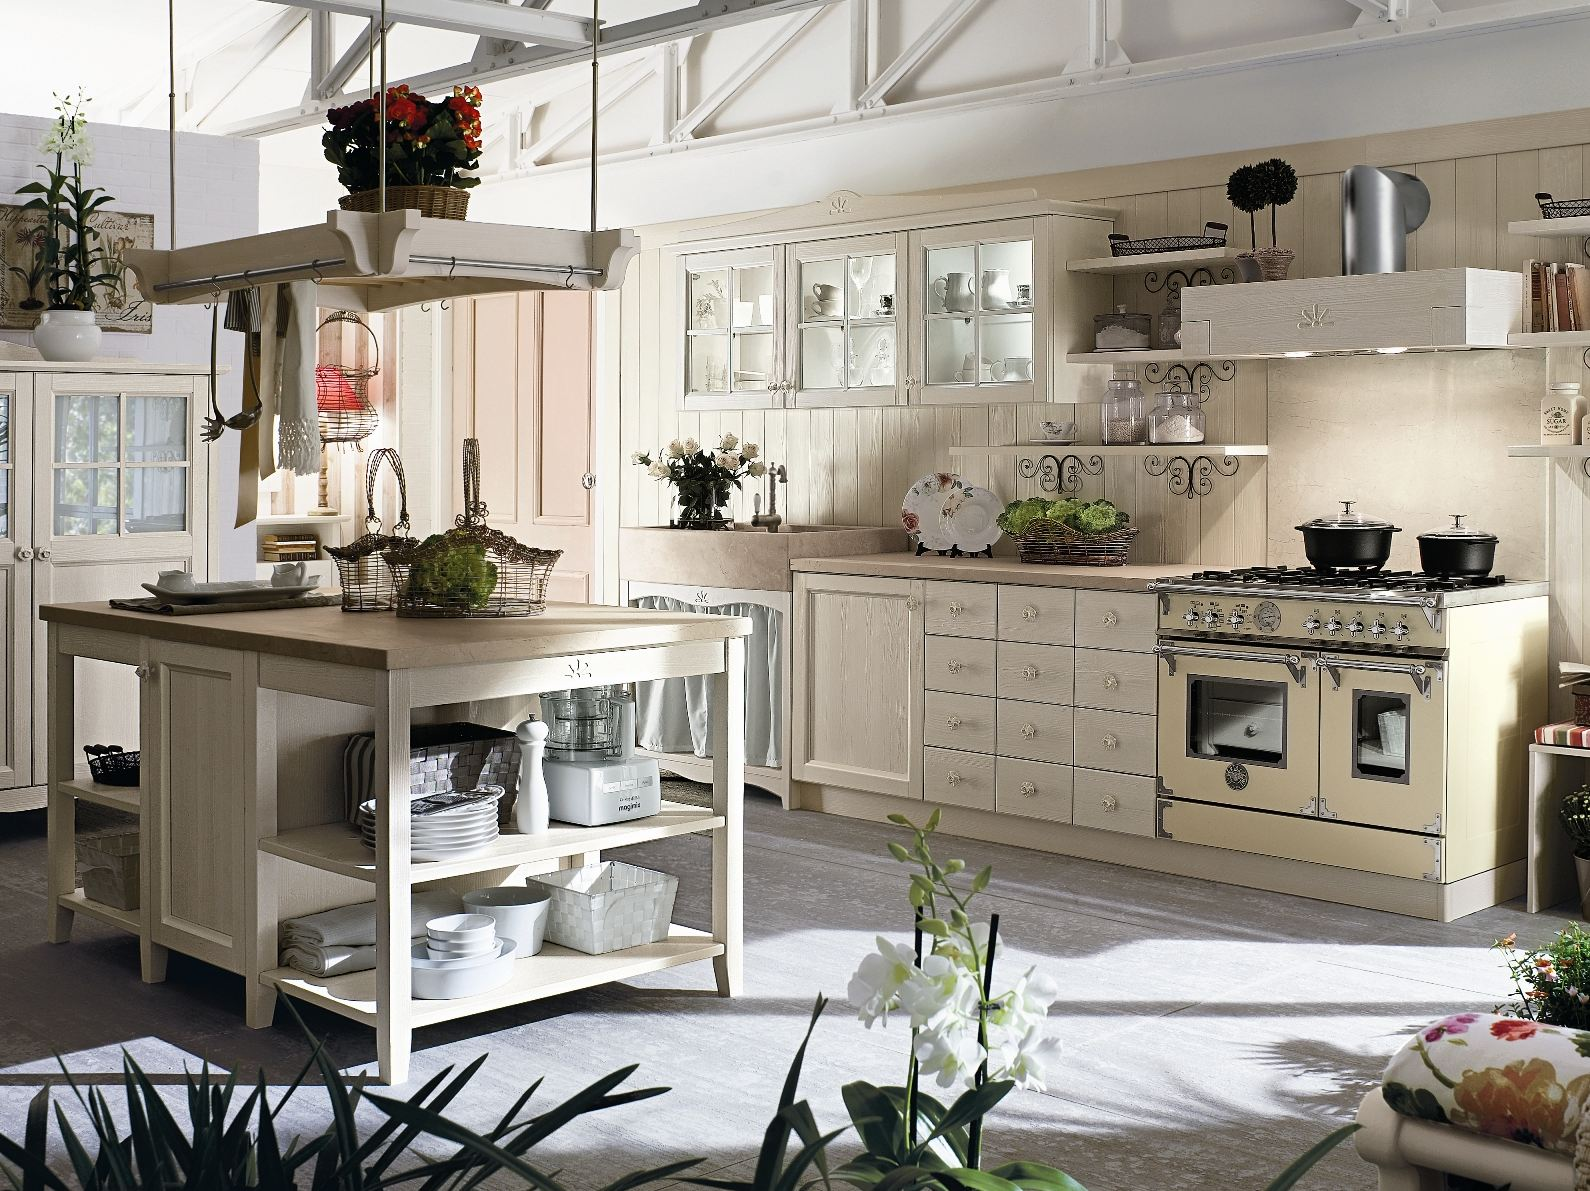 Stunning Cucine Country Economiche Images - Ideas & Design 2017 ...